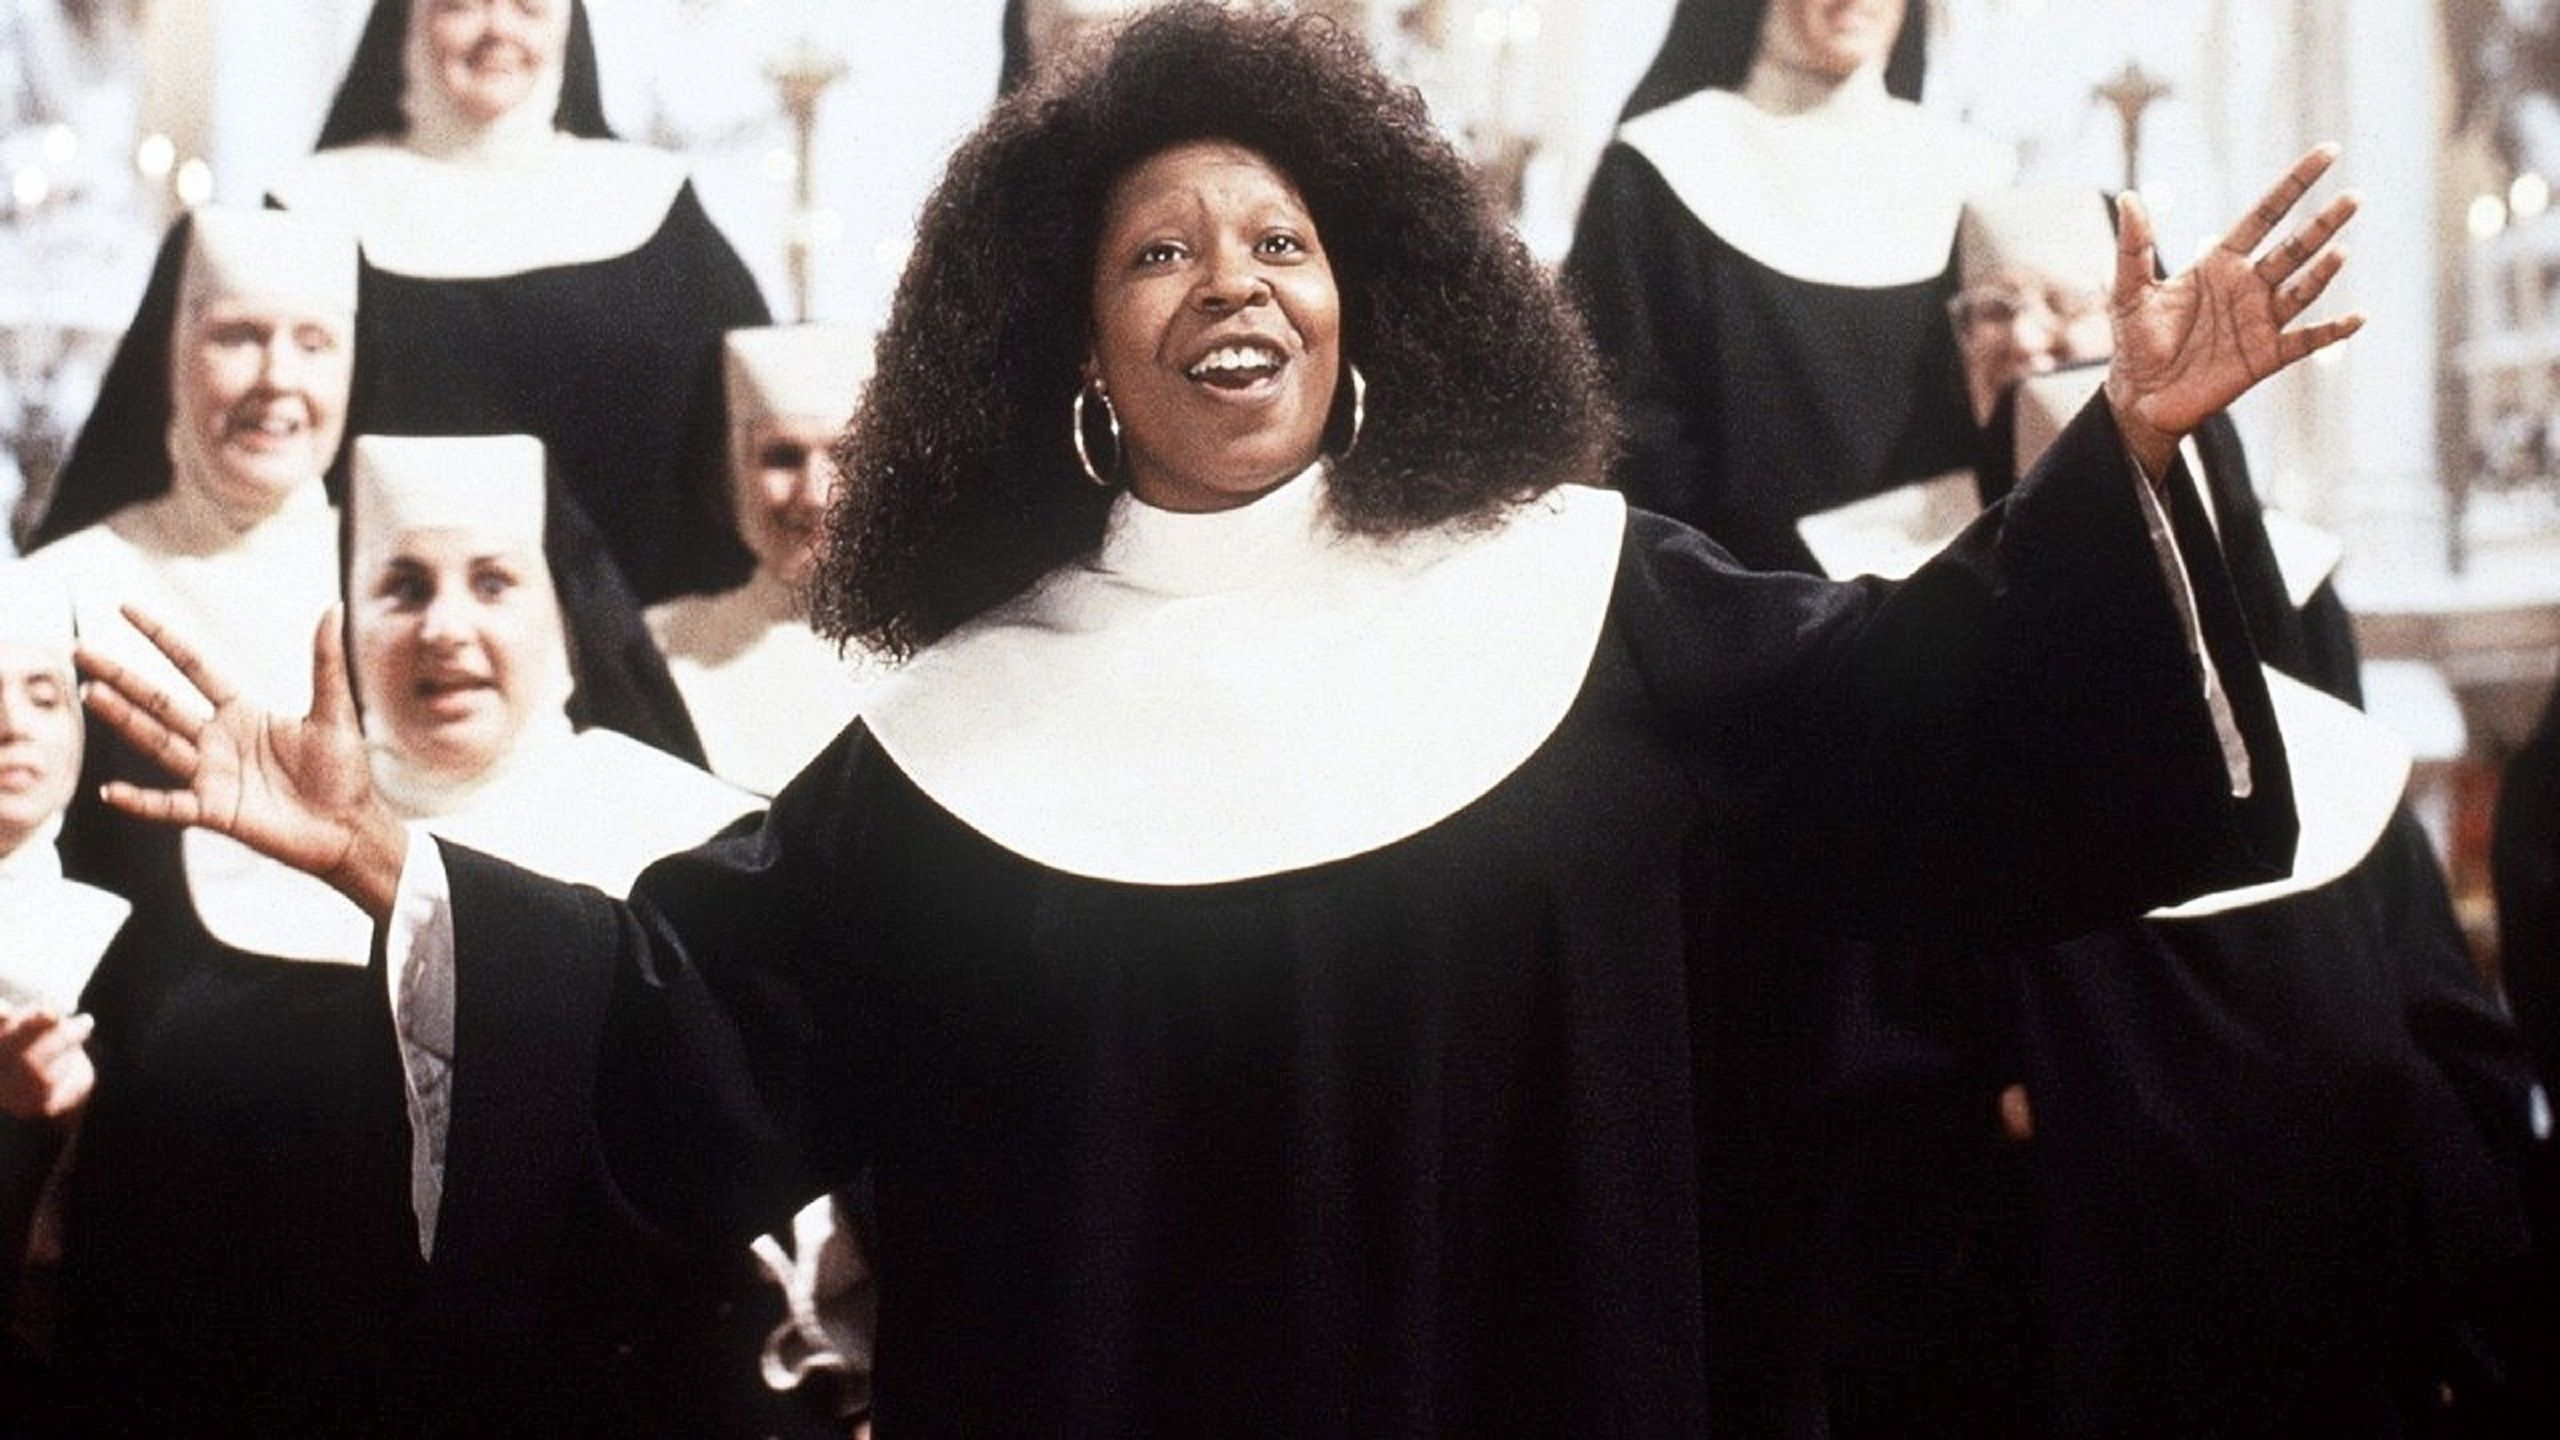 Sister Act (1992) choir singing with Whoopi Goldberg